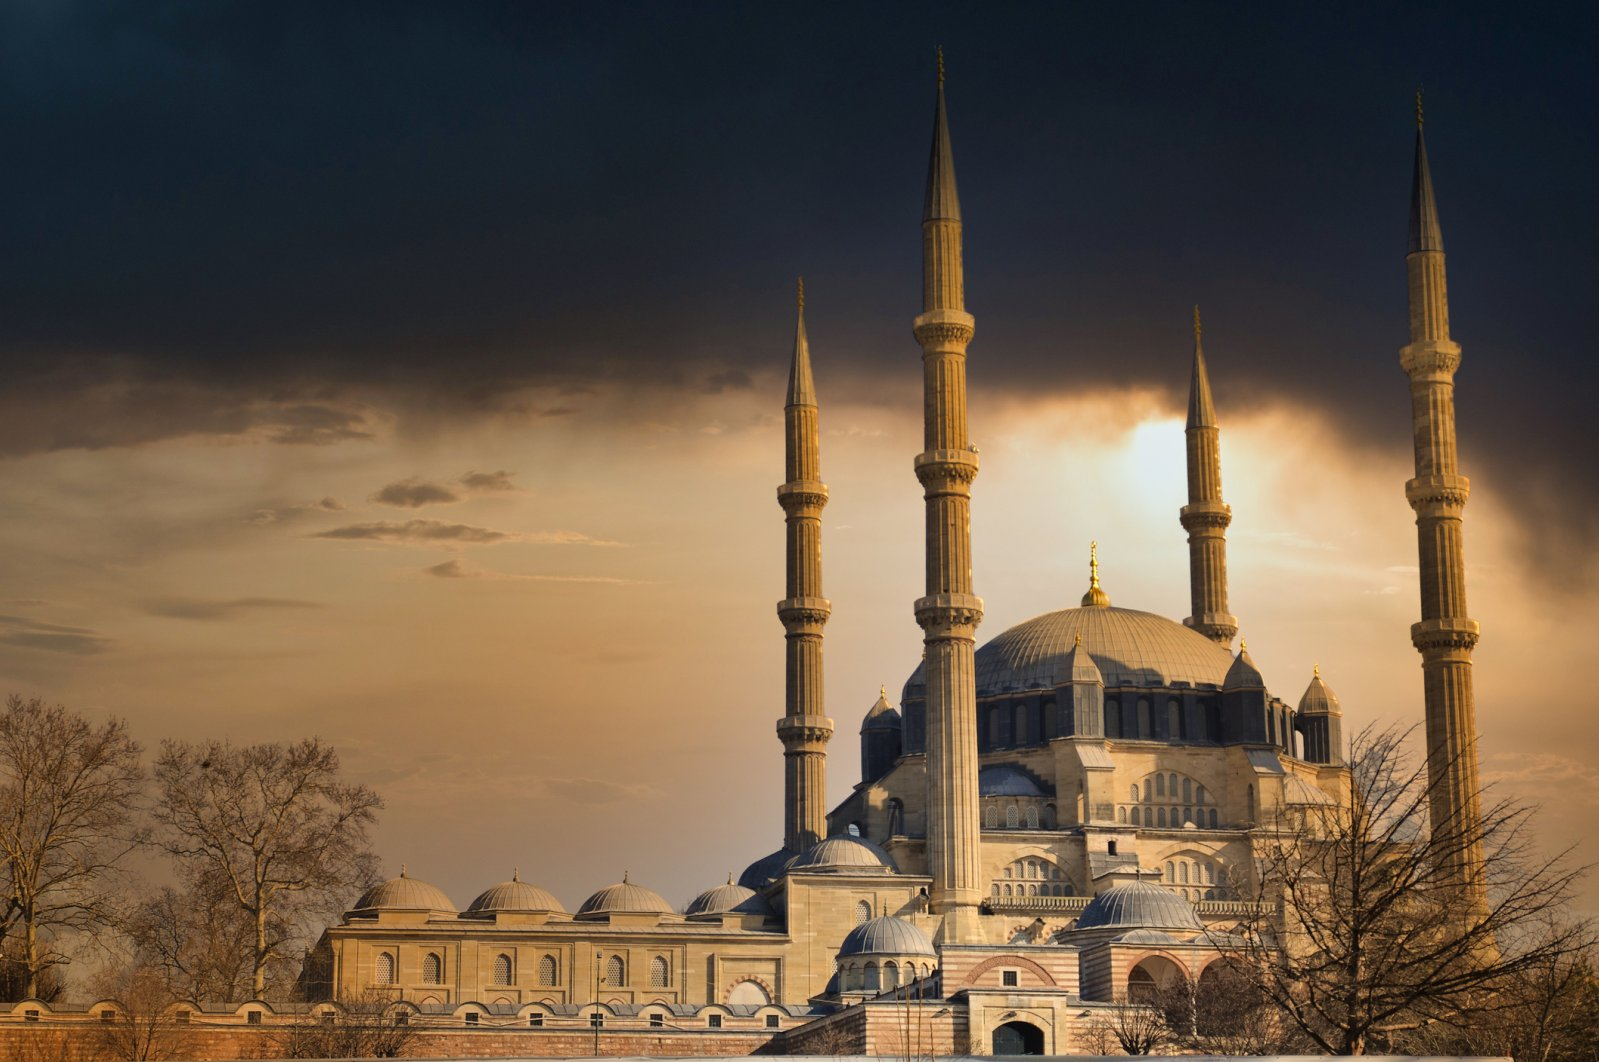 The UNESCO World Heritage Site is regarded as the peak of Turkish-Islamic architecture. (iStock Photo)